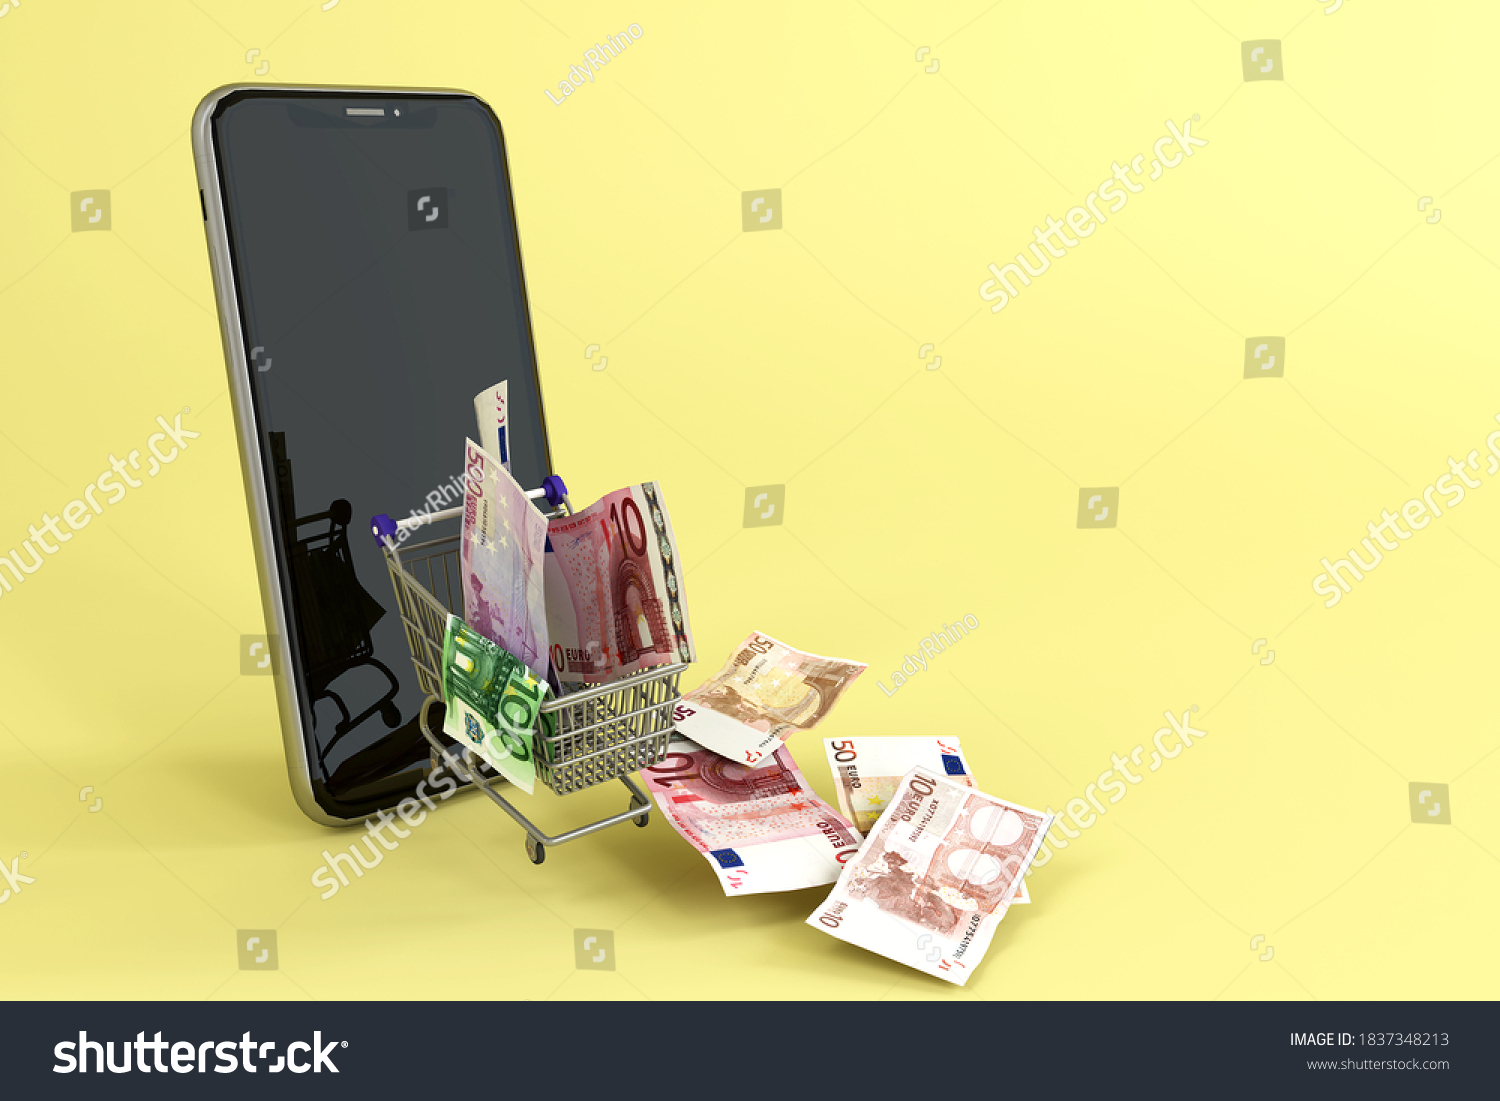 stock-photo-mobile-bank-notes-and-shoppi